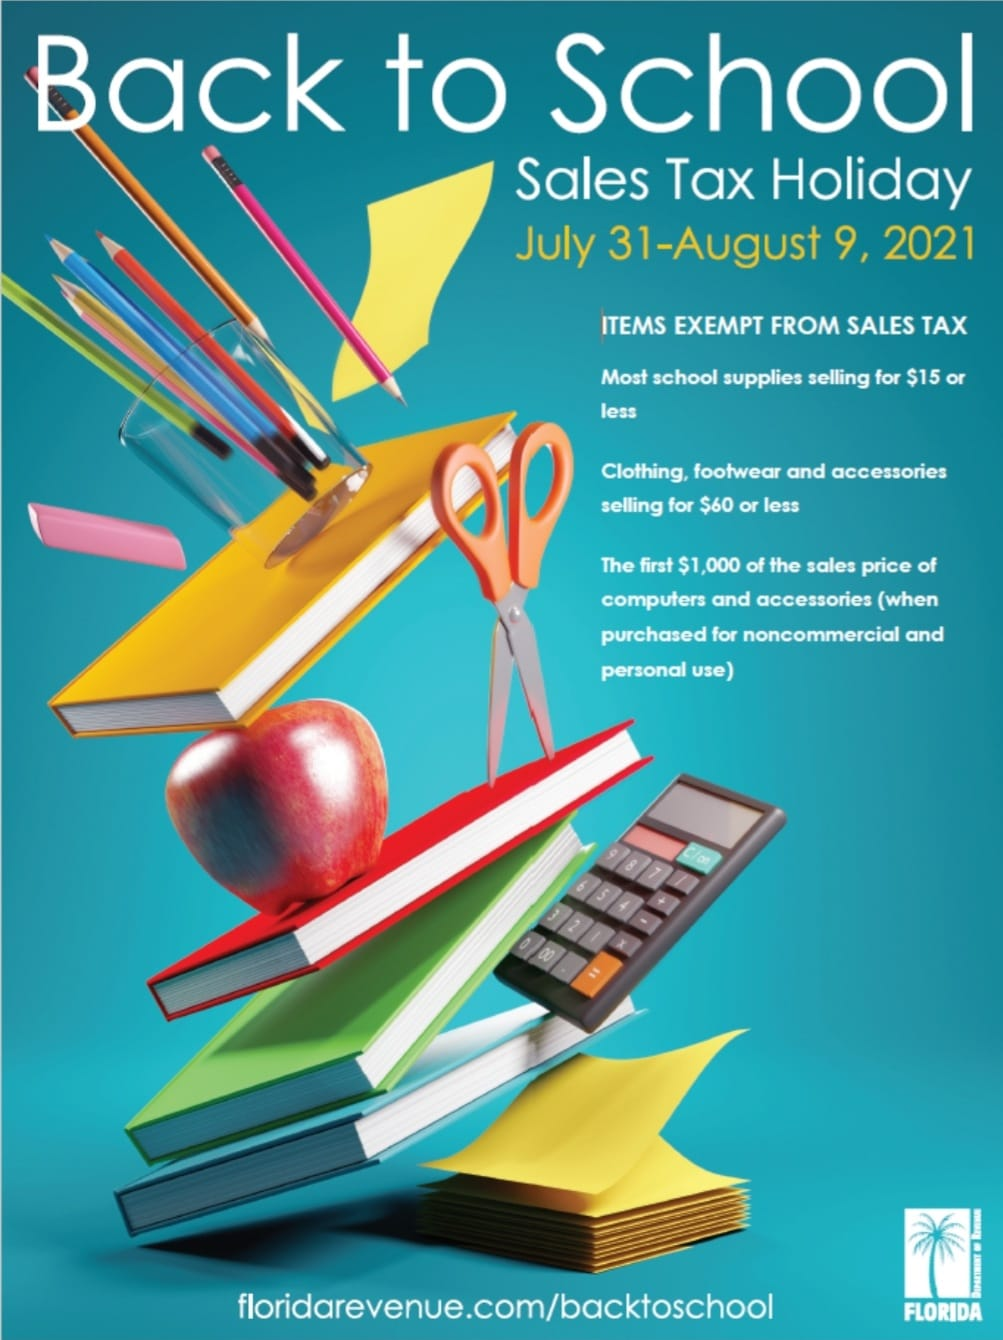 Back to School Tax Holiday Information